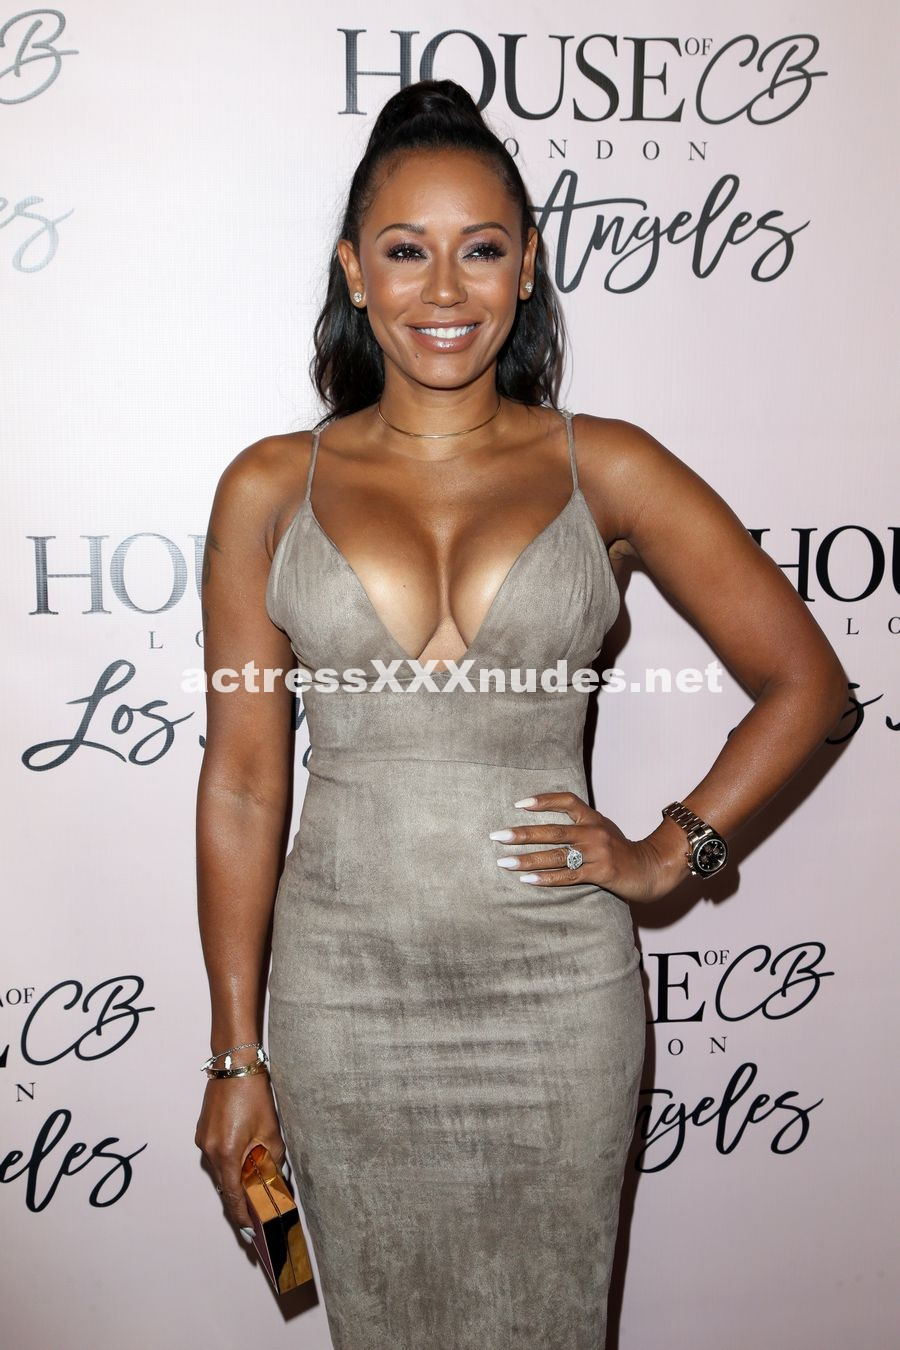 Melanie Brown looked very busty in a dress showing off those big titties